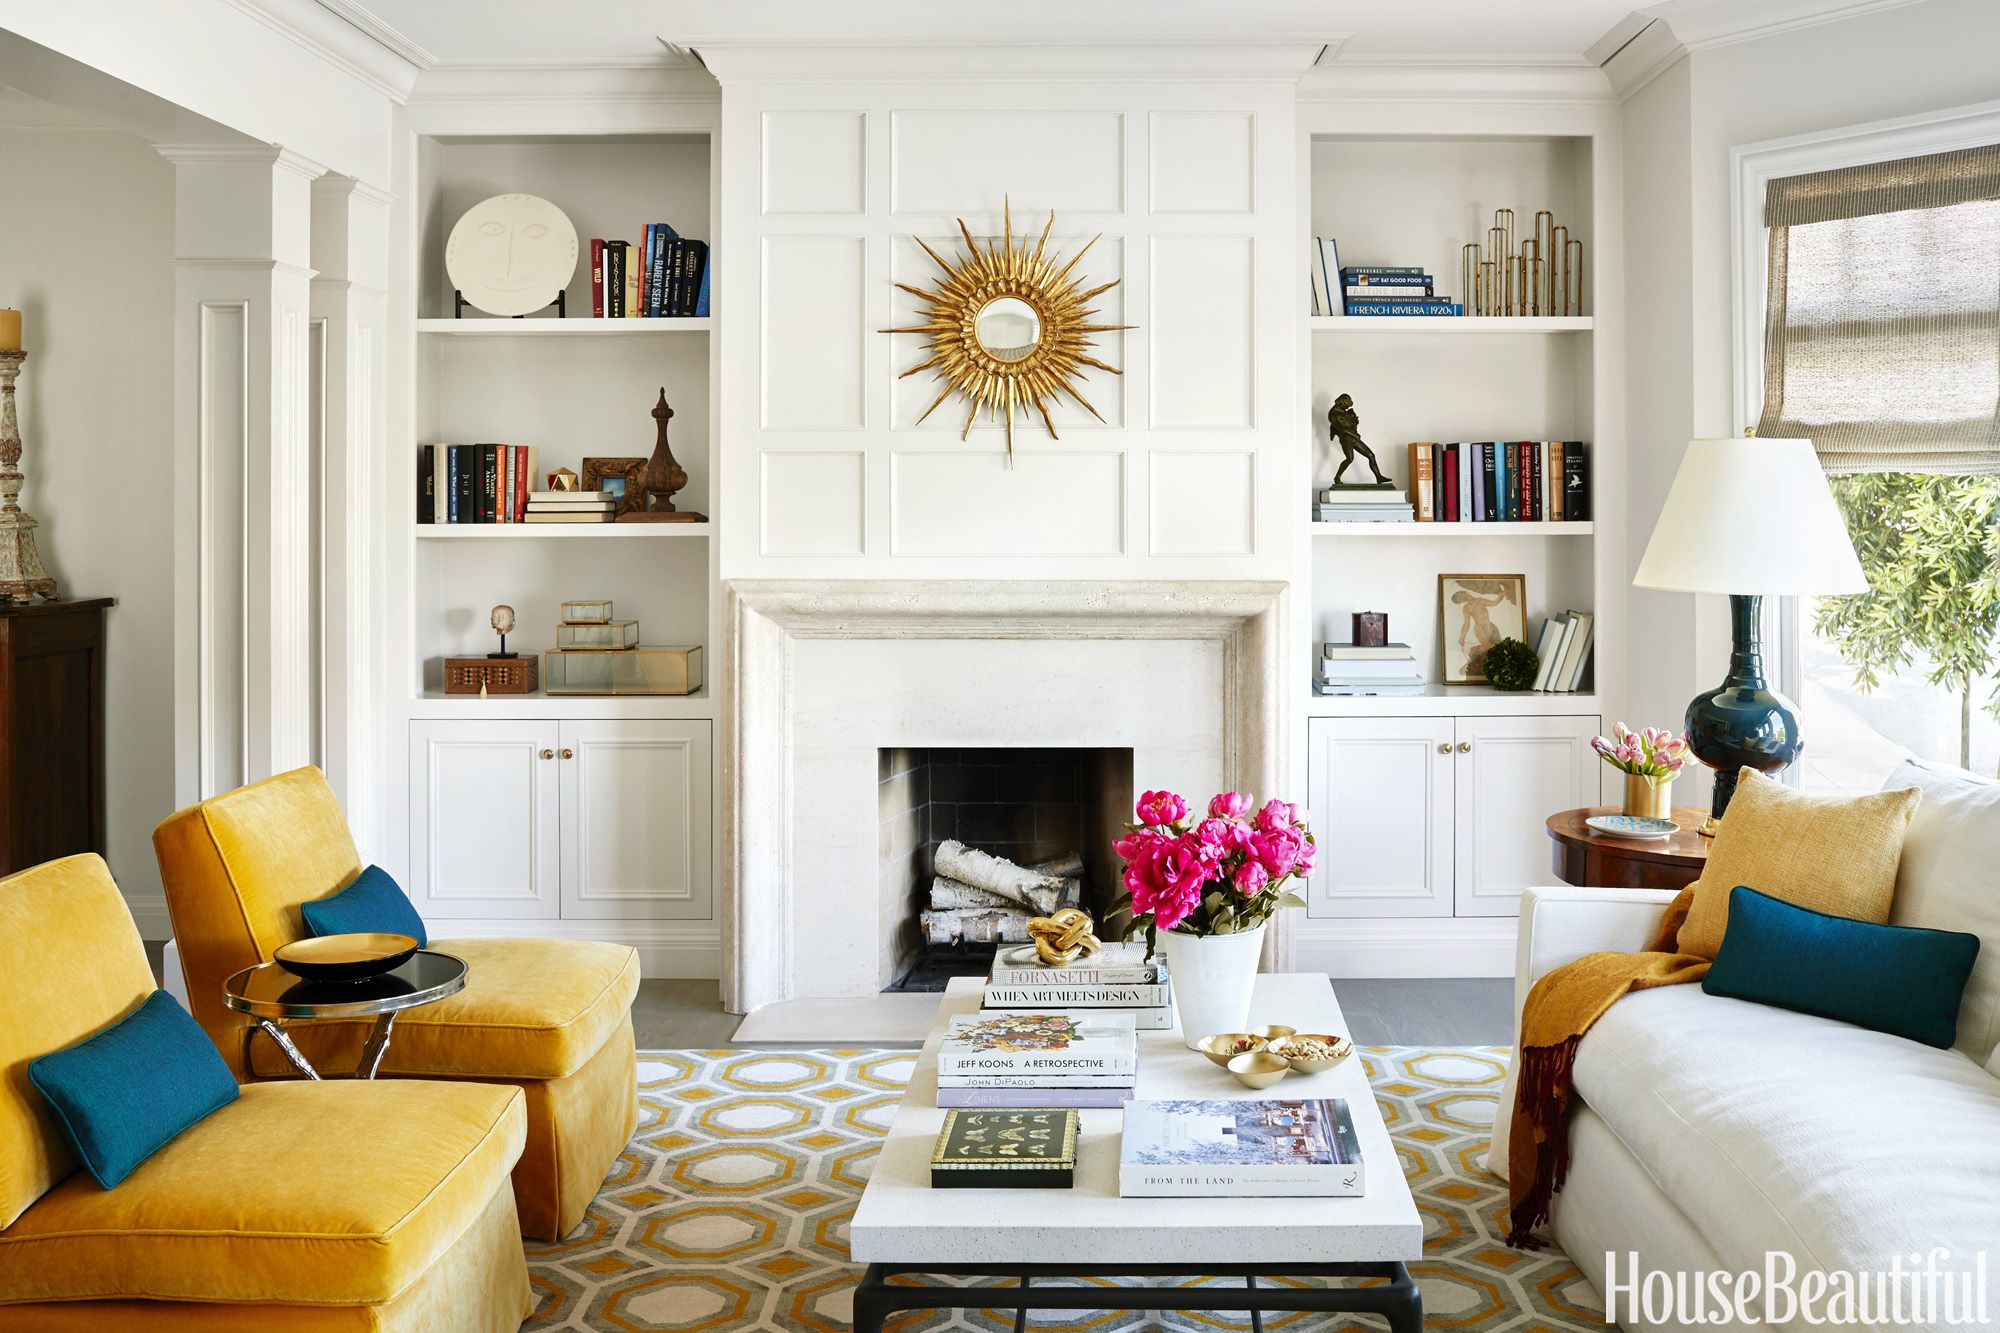 30+ Cozy Fireplace Ideas - Beautiful Decorating Pictures of Fireplaces